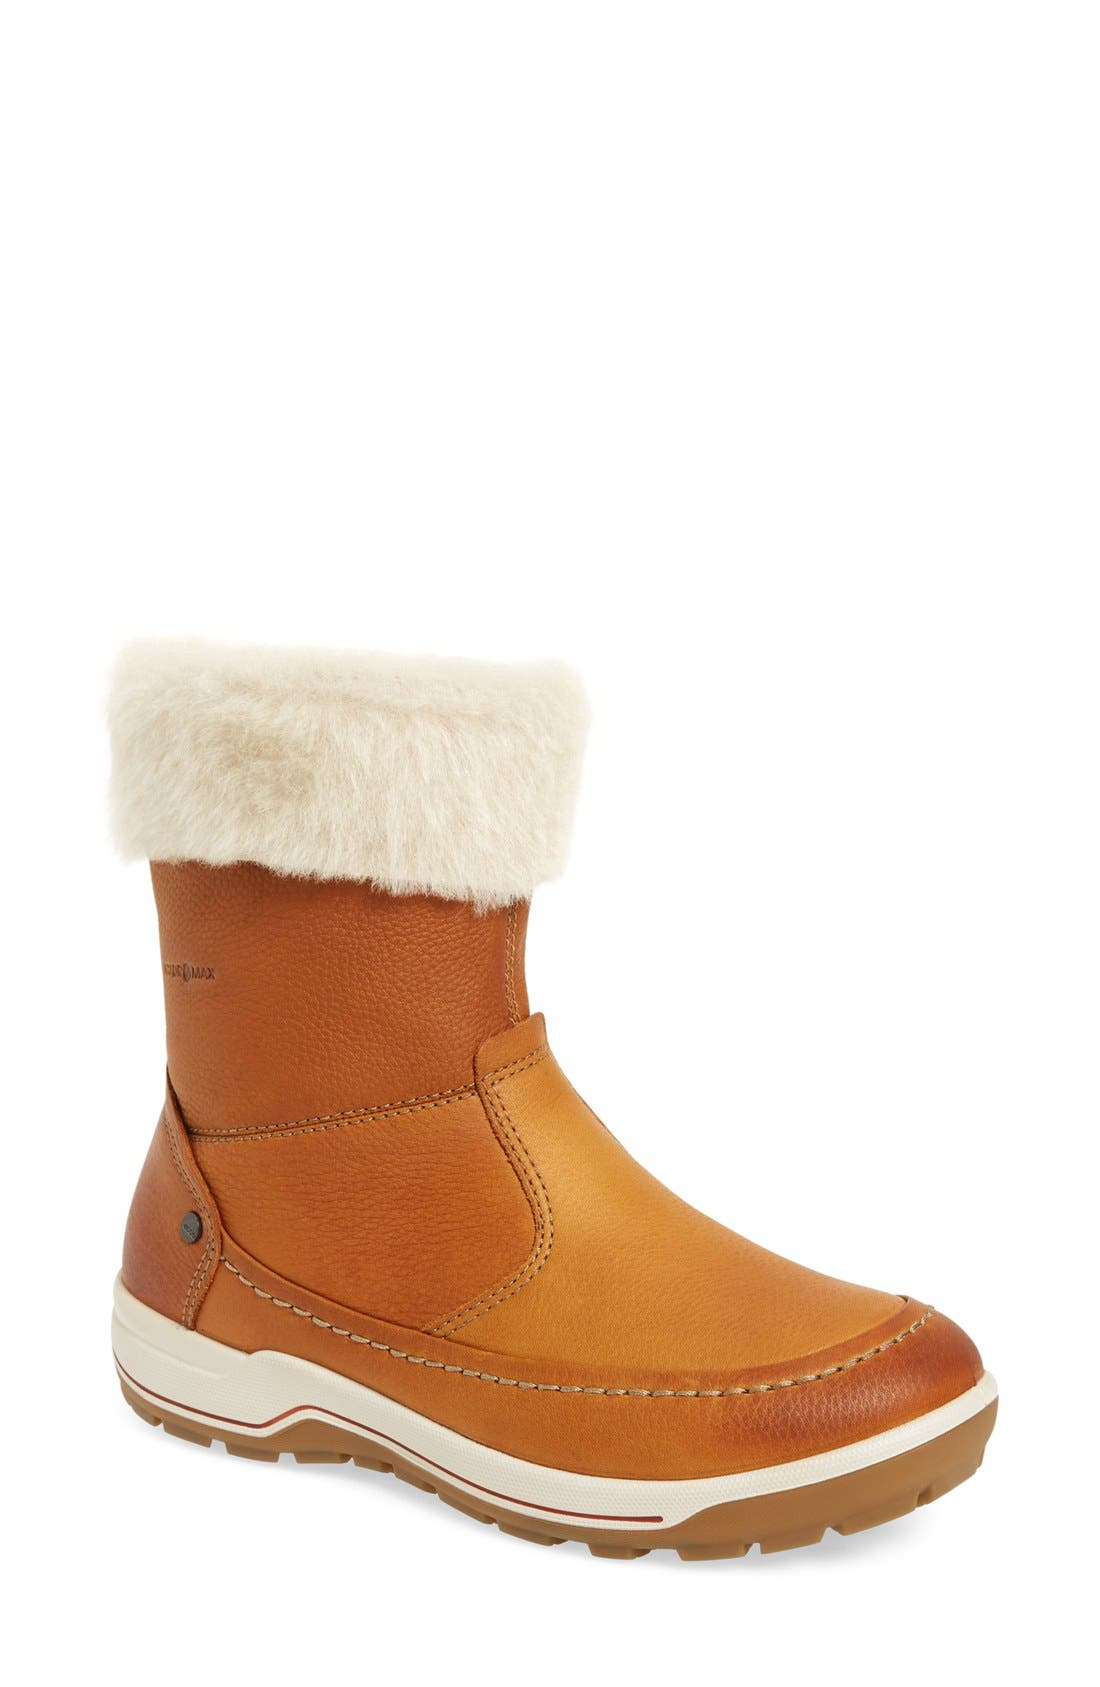 Trace Water Resistant Bootie,                         Main,                         color, 249